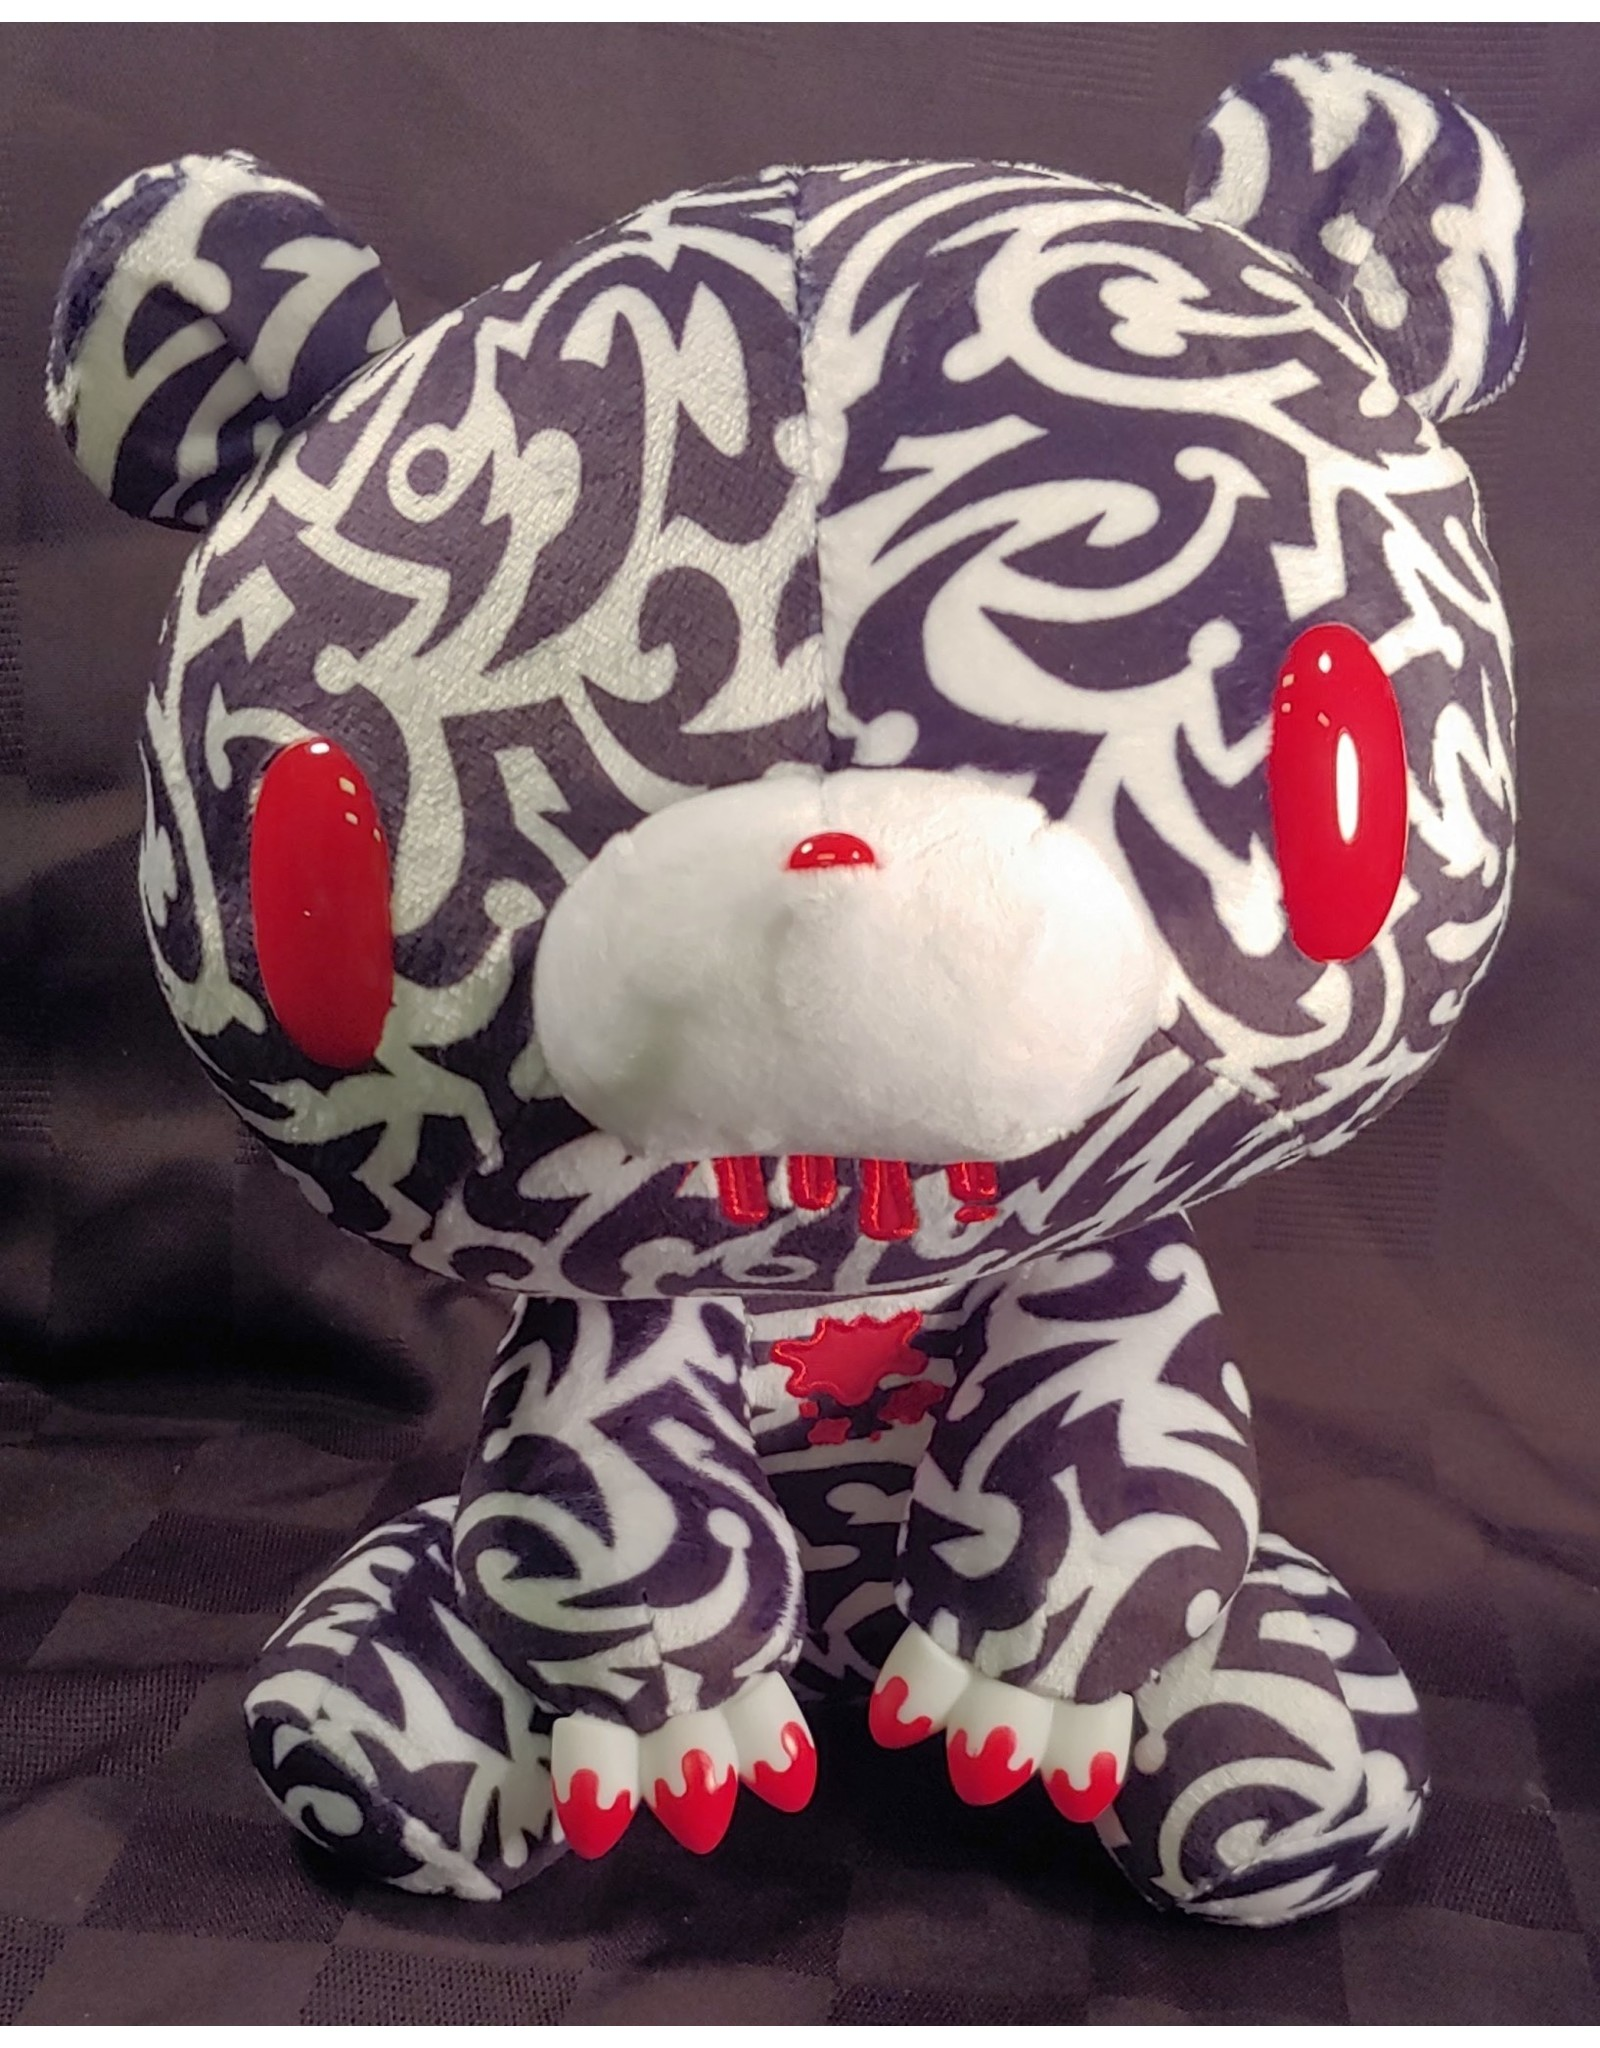 Gloomy Bear Tribal Black Plush